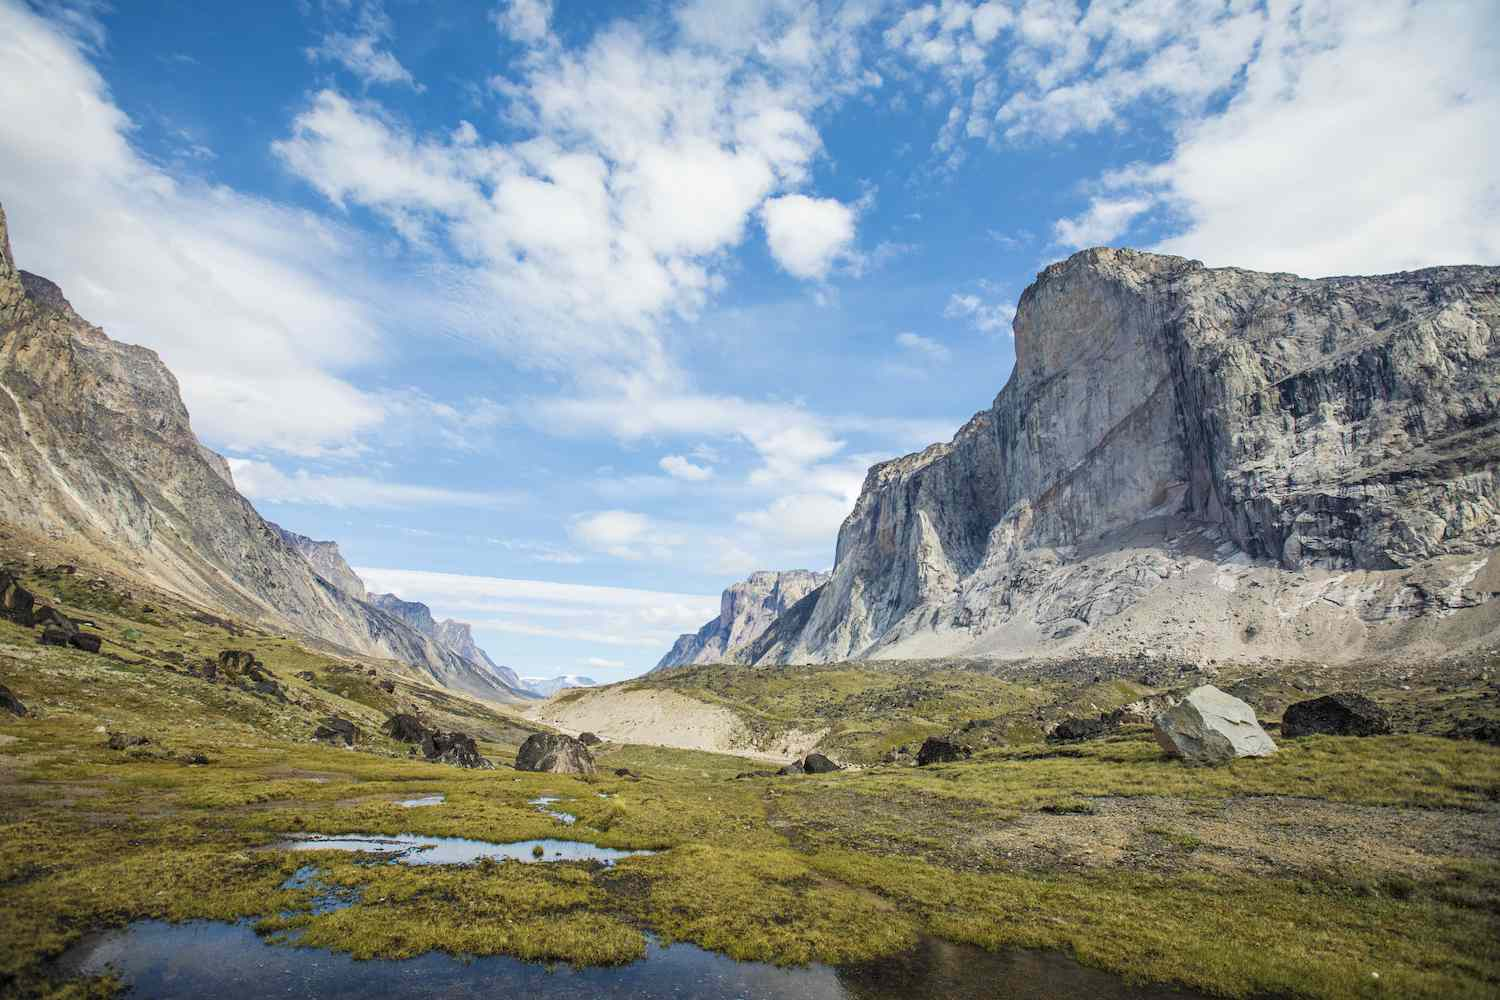 Steep cliffs of Auyuittuq National Park look over a green valley